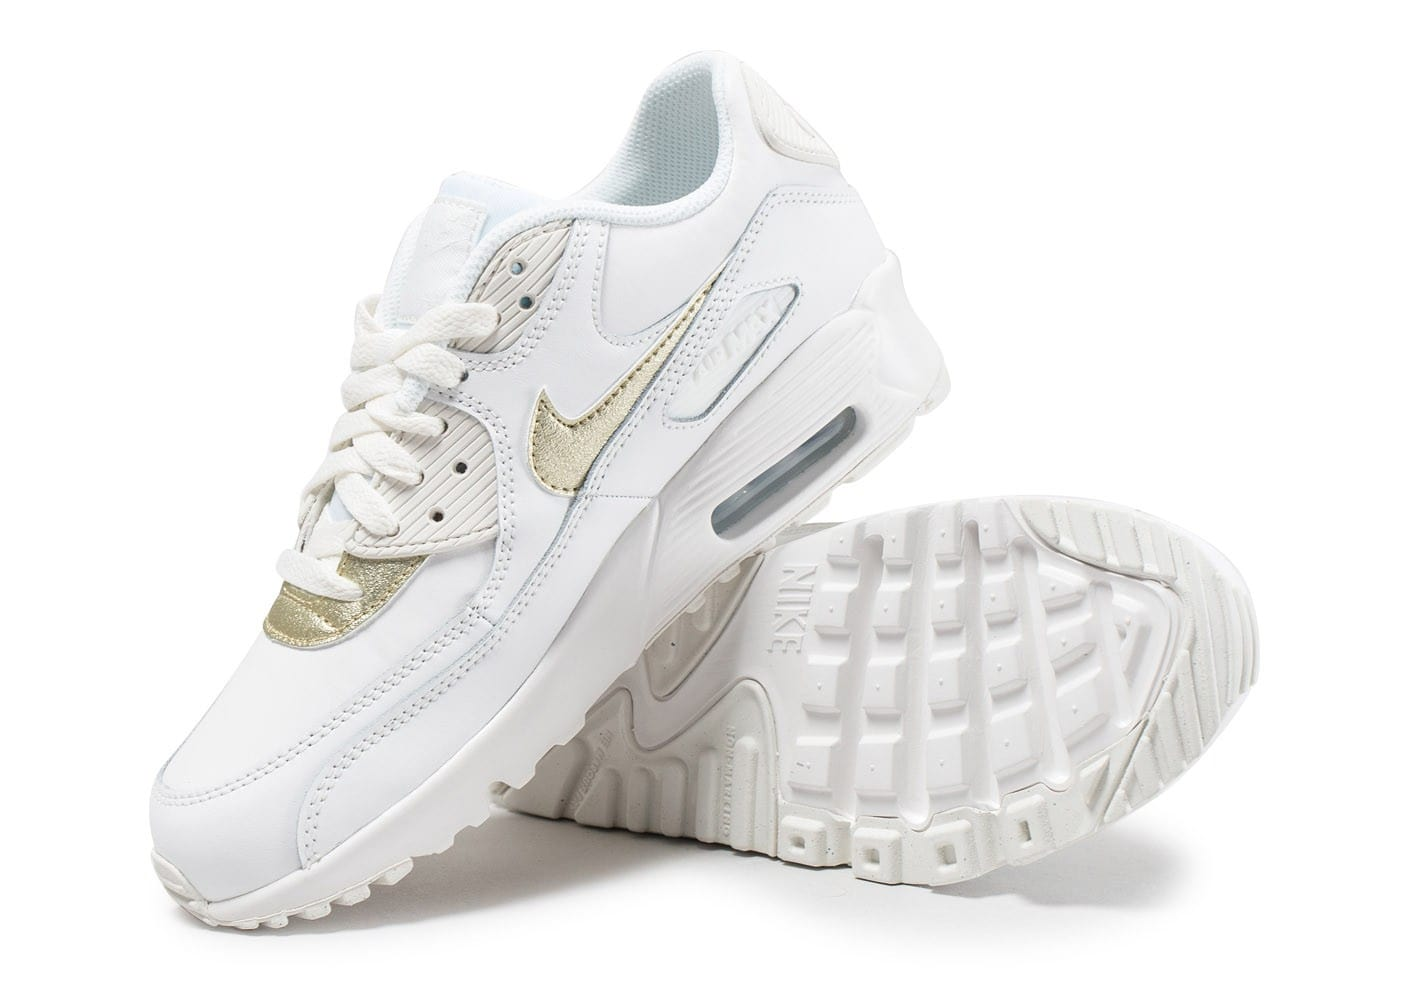 super mignon 37f0b 61baa Nike Air Max 90 Leather Junior blanche et or - Chaussures ...